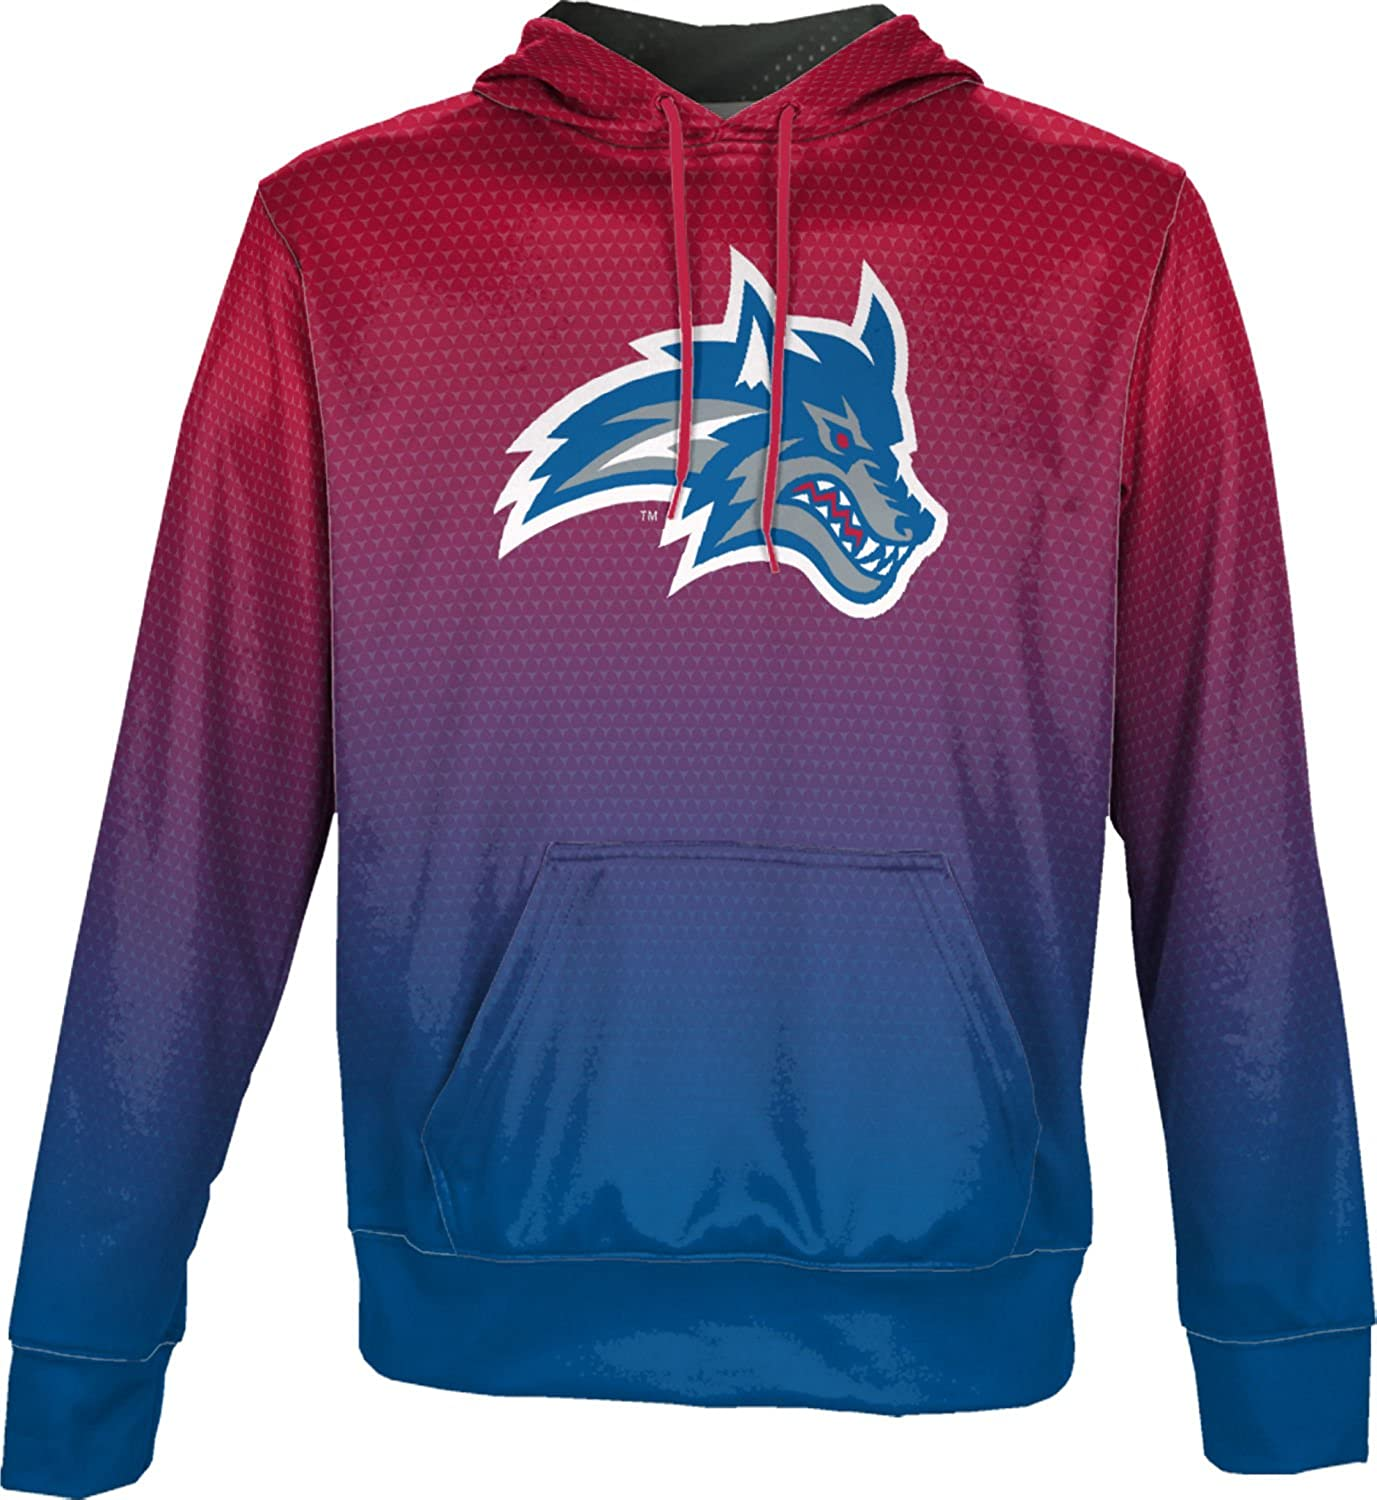 ProSphere Stony Brook University Boys Hoodie Sweatshirt Zoom